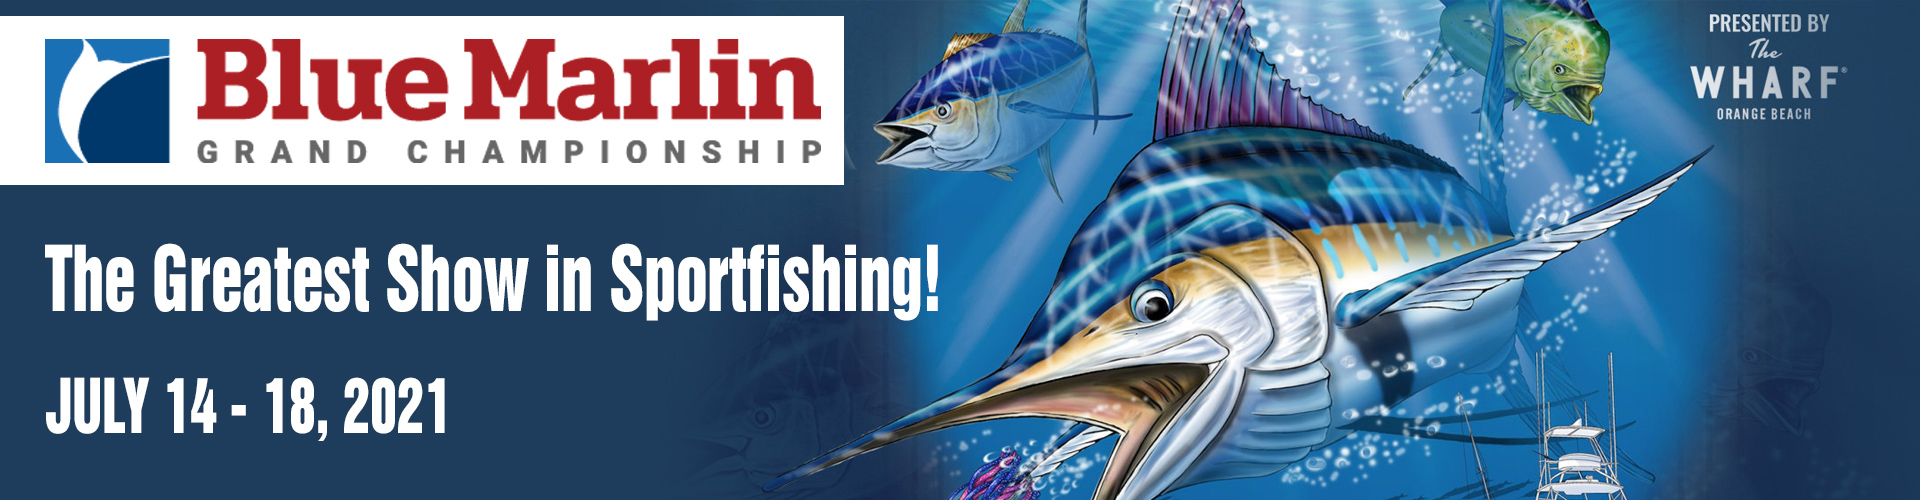 2021 Blue Marlin Grand Championship Live Scoring by CatchStat.com